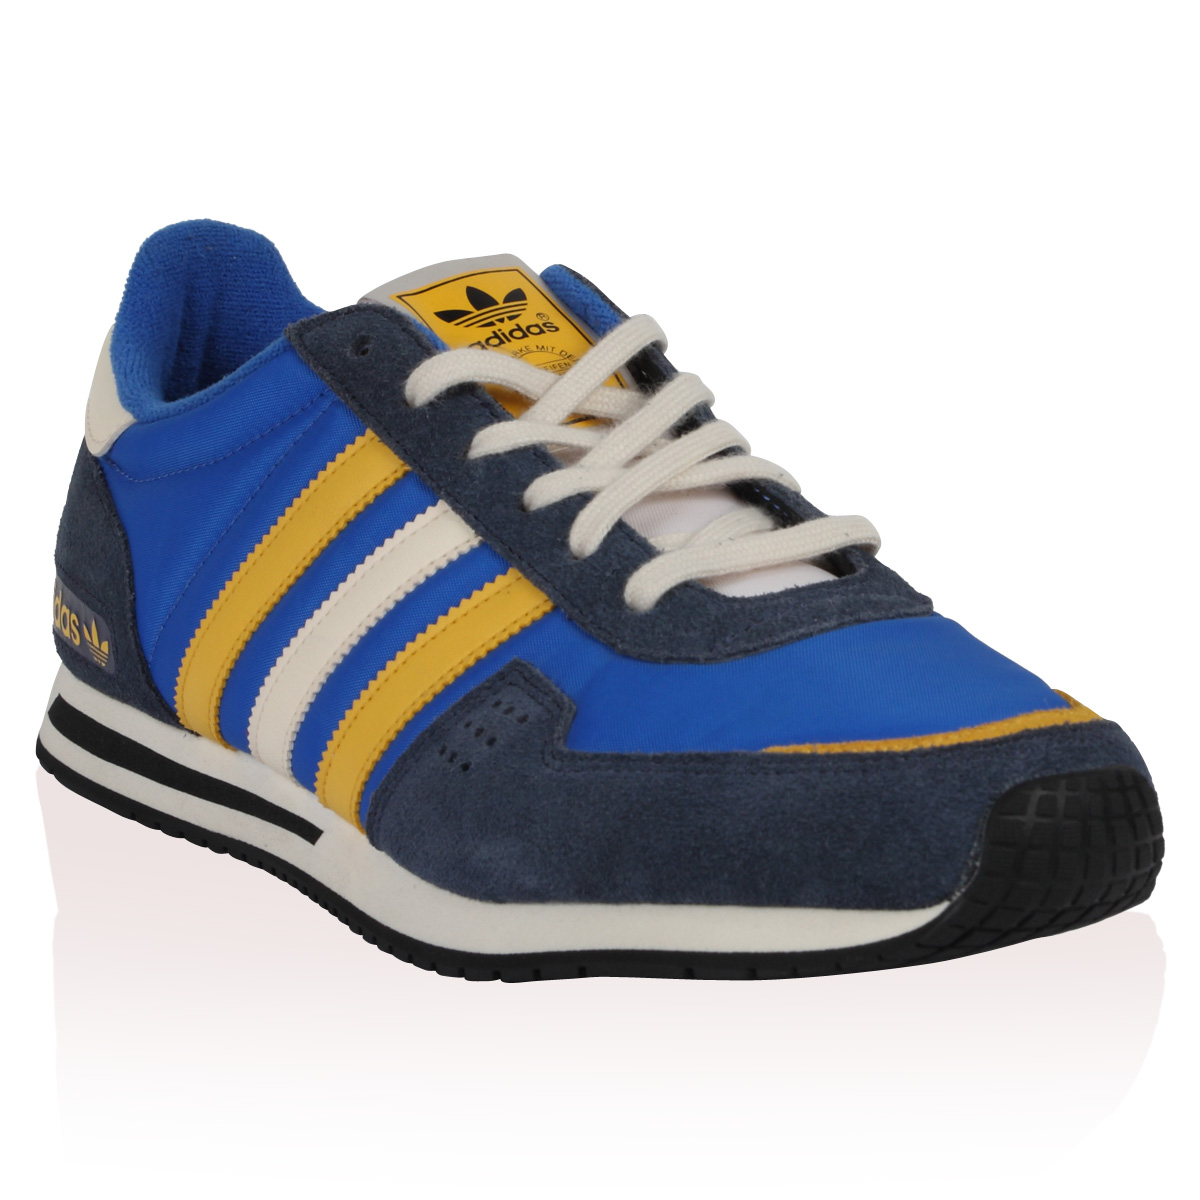 brand new 9fa5a 20cf6 NEW MENS ADIDAS COURAGE RACER BLUE YELLOW LACE UP TRAINERS FLAT SHOES SIZE  8 UK